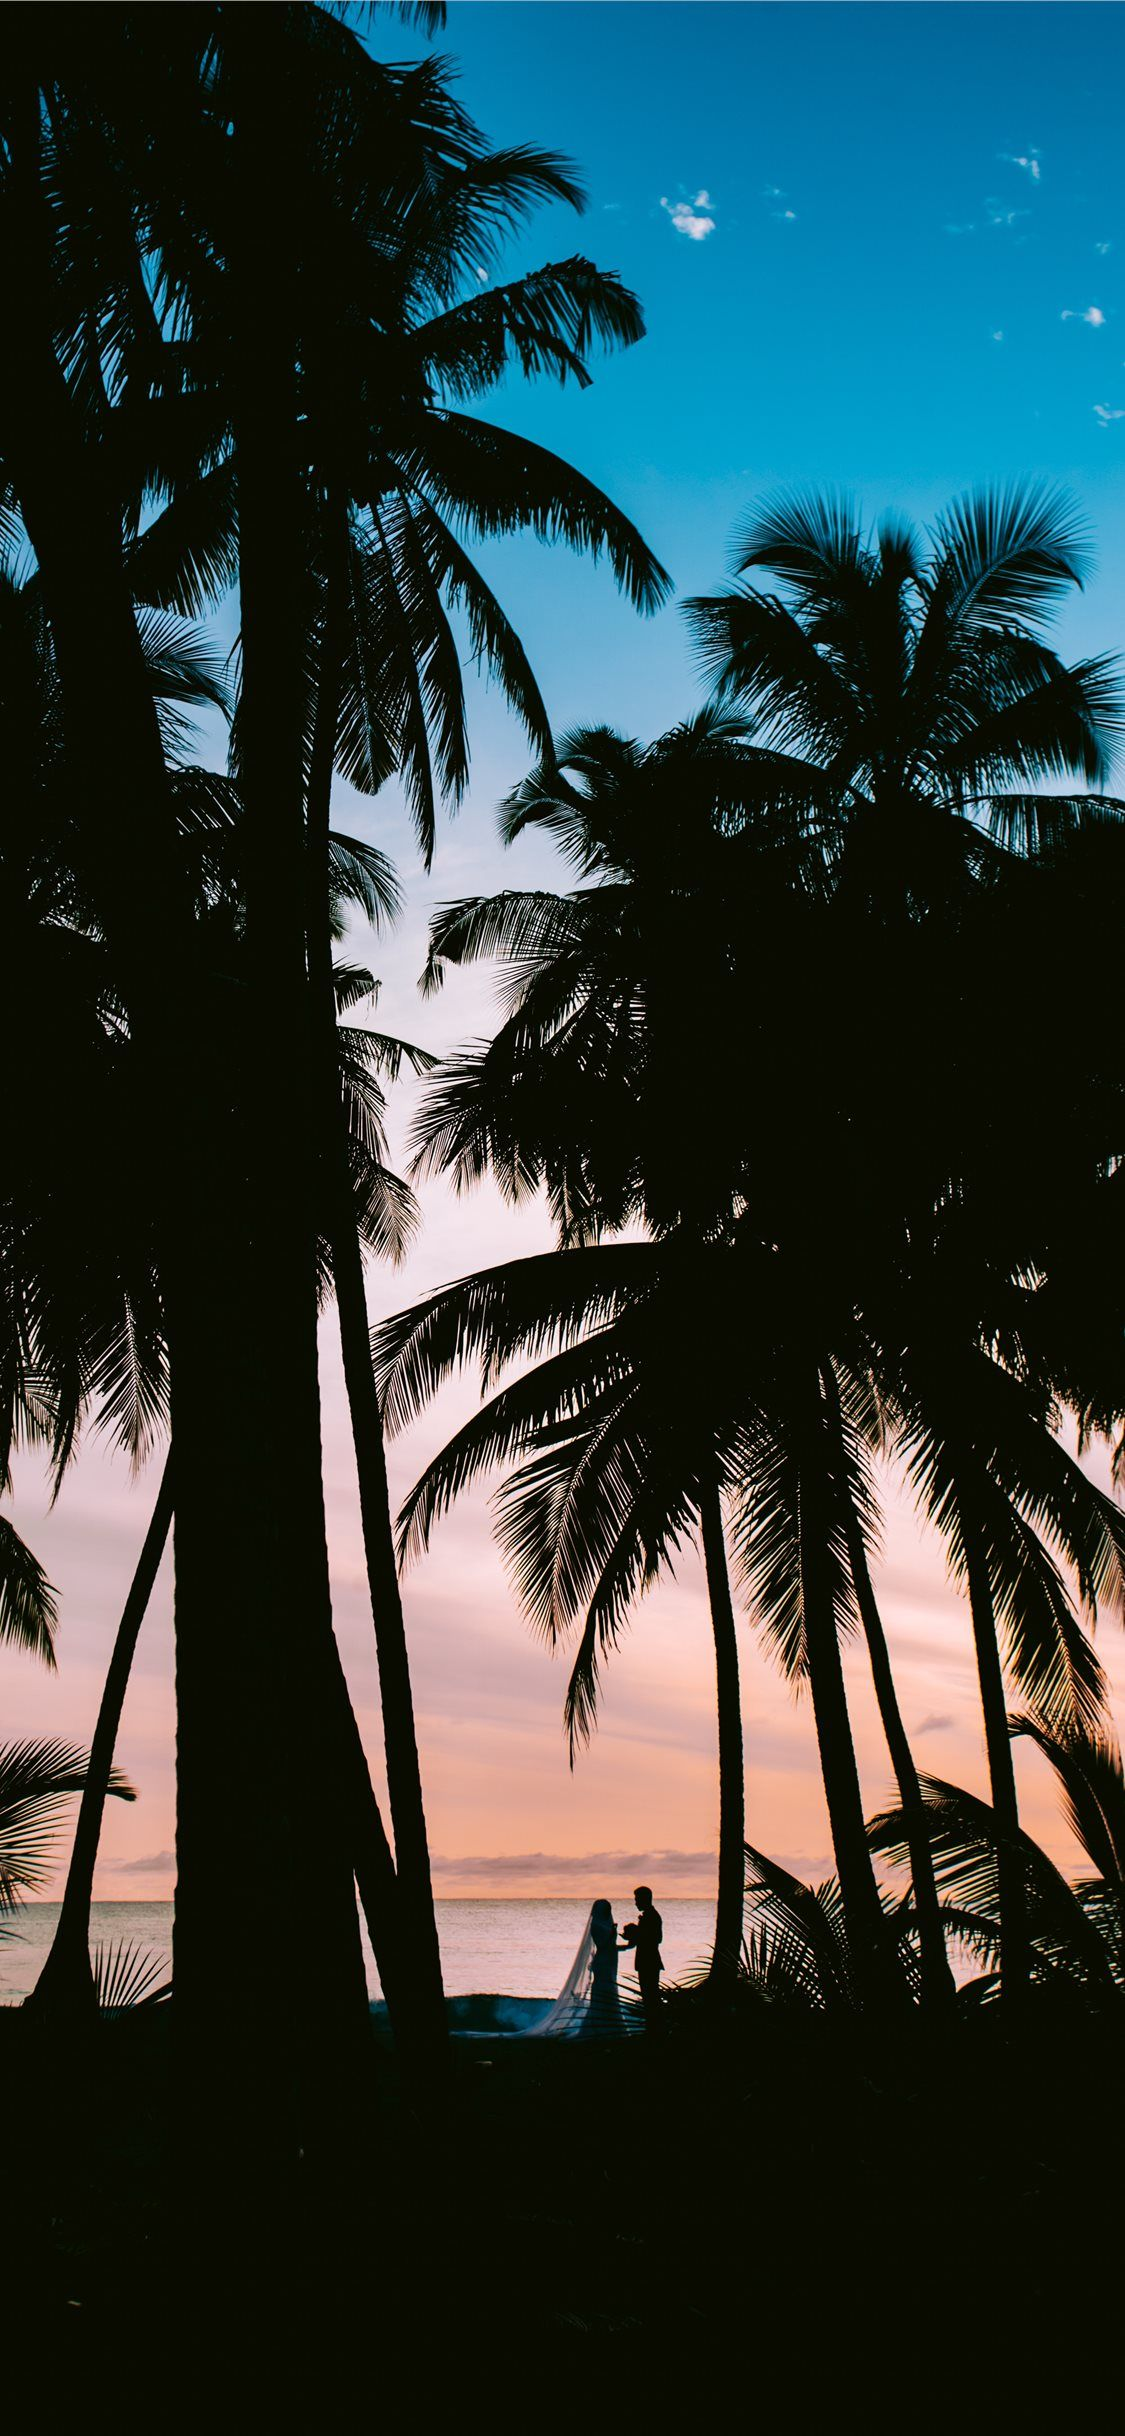 Free download the silhouette photography of coconut palm